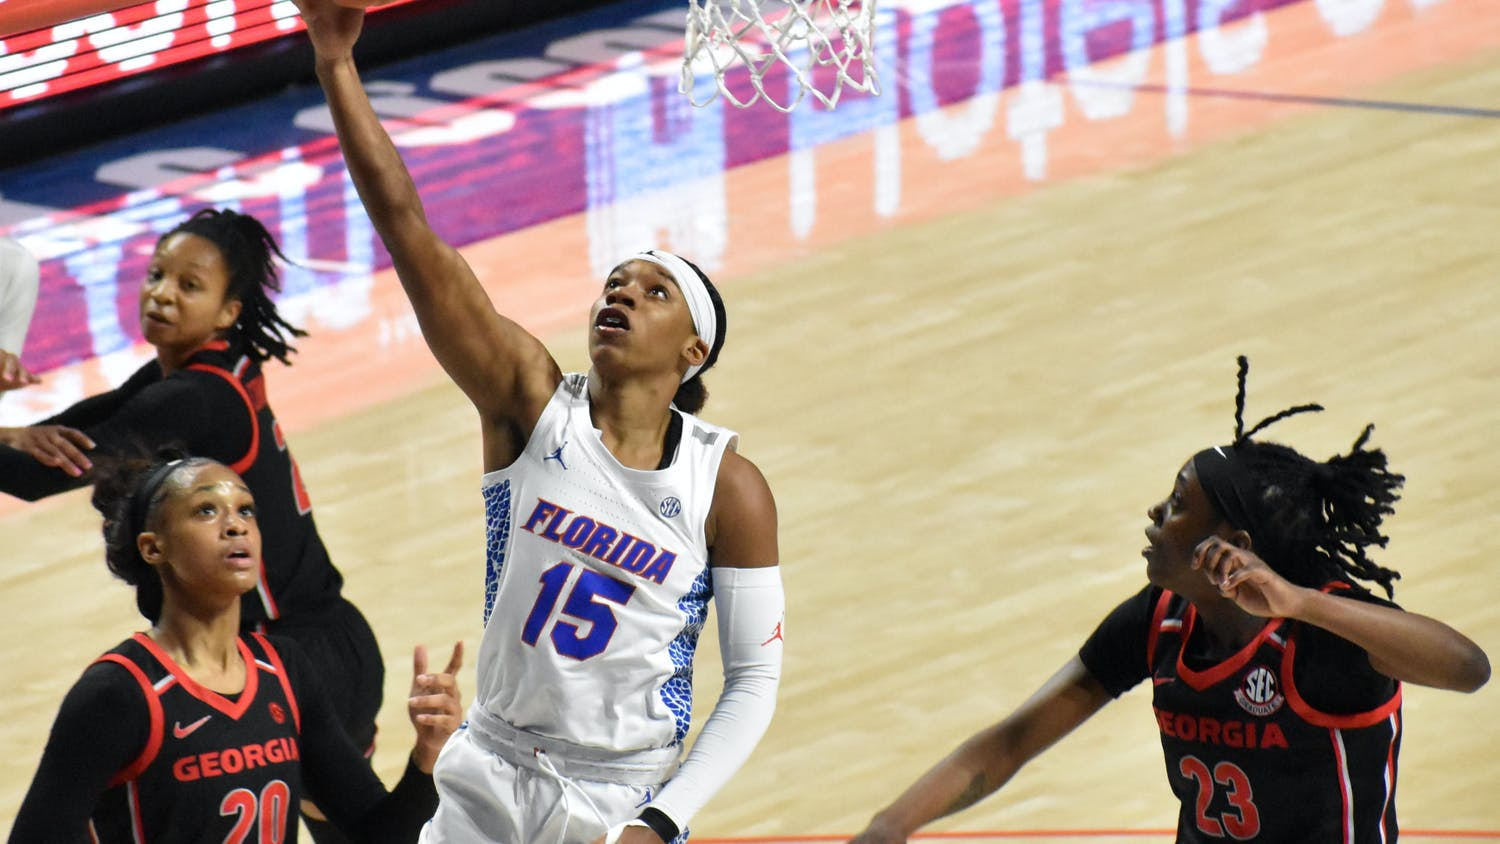 Sophomore guard Nina Rickards scored 14 points, and freshman forwards Jordyn Merritt and Floor Toonders dropped a career-high 16 points. Photo from UF-Georgia game Sunday.